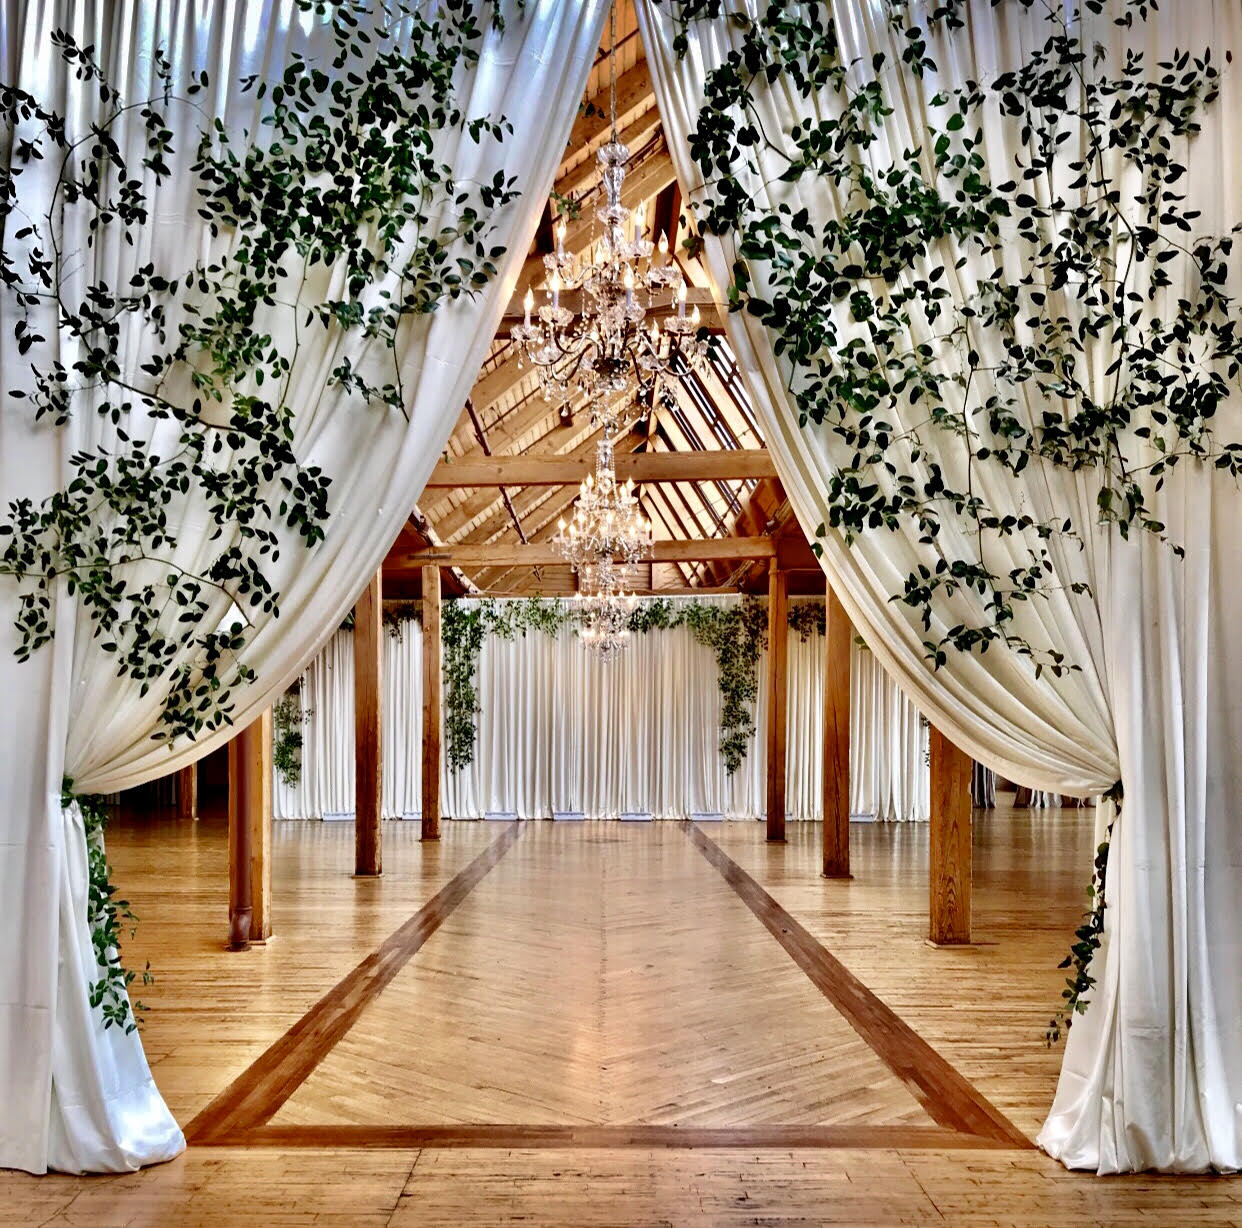 Full entrance drapery + wider backdrop with greenery